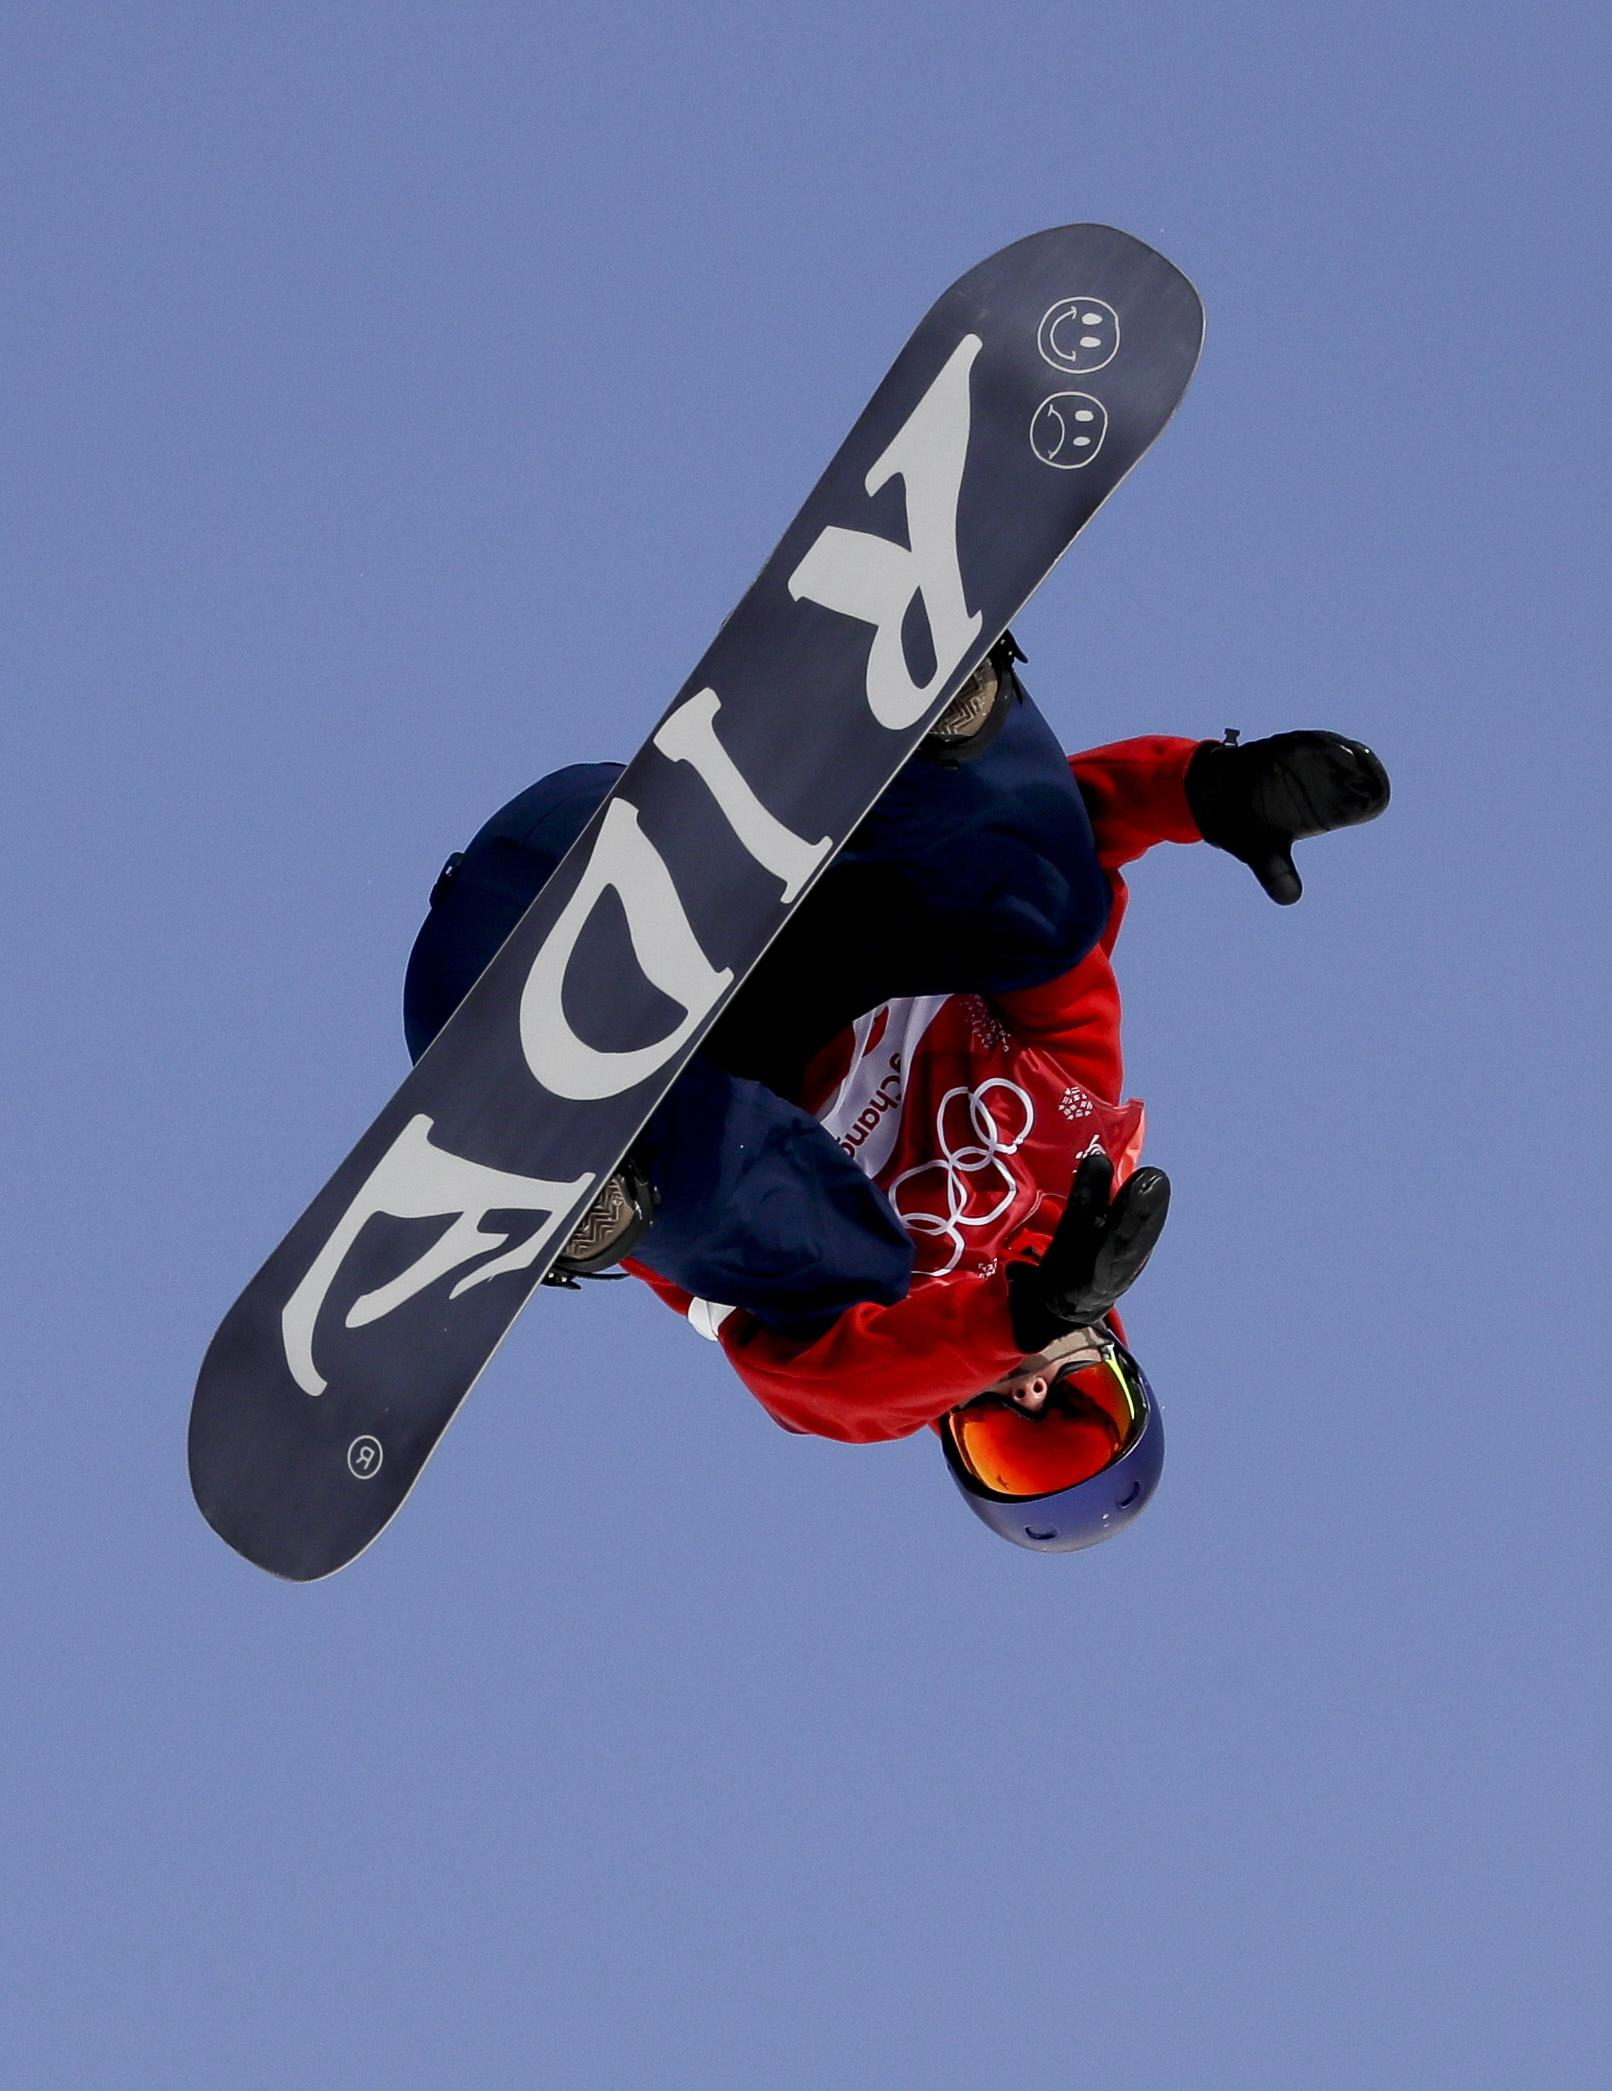 Morgan started snowboarding at the age of 14 after switching from acrobatic gymnastics